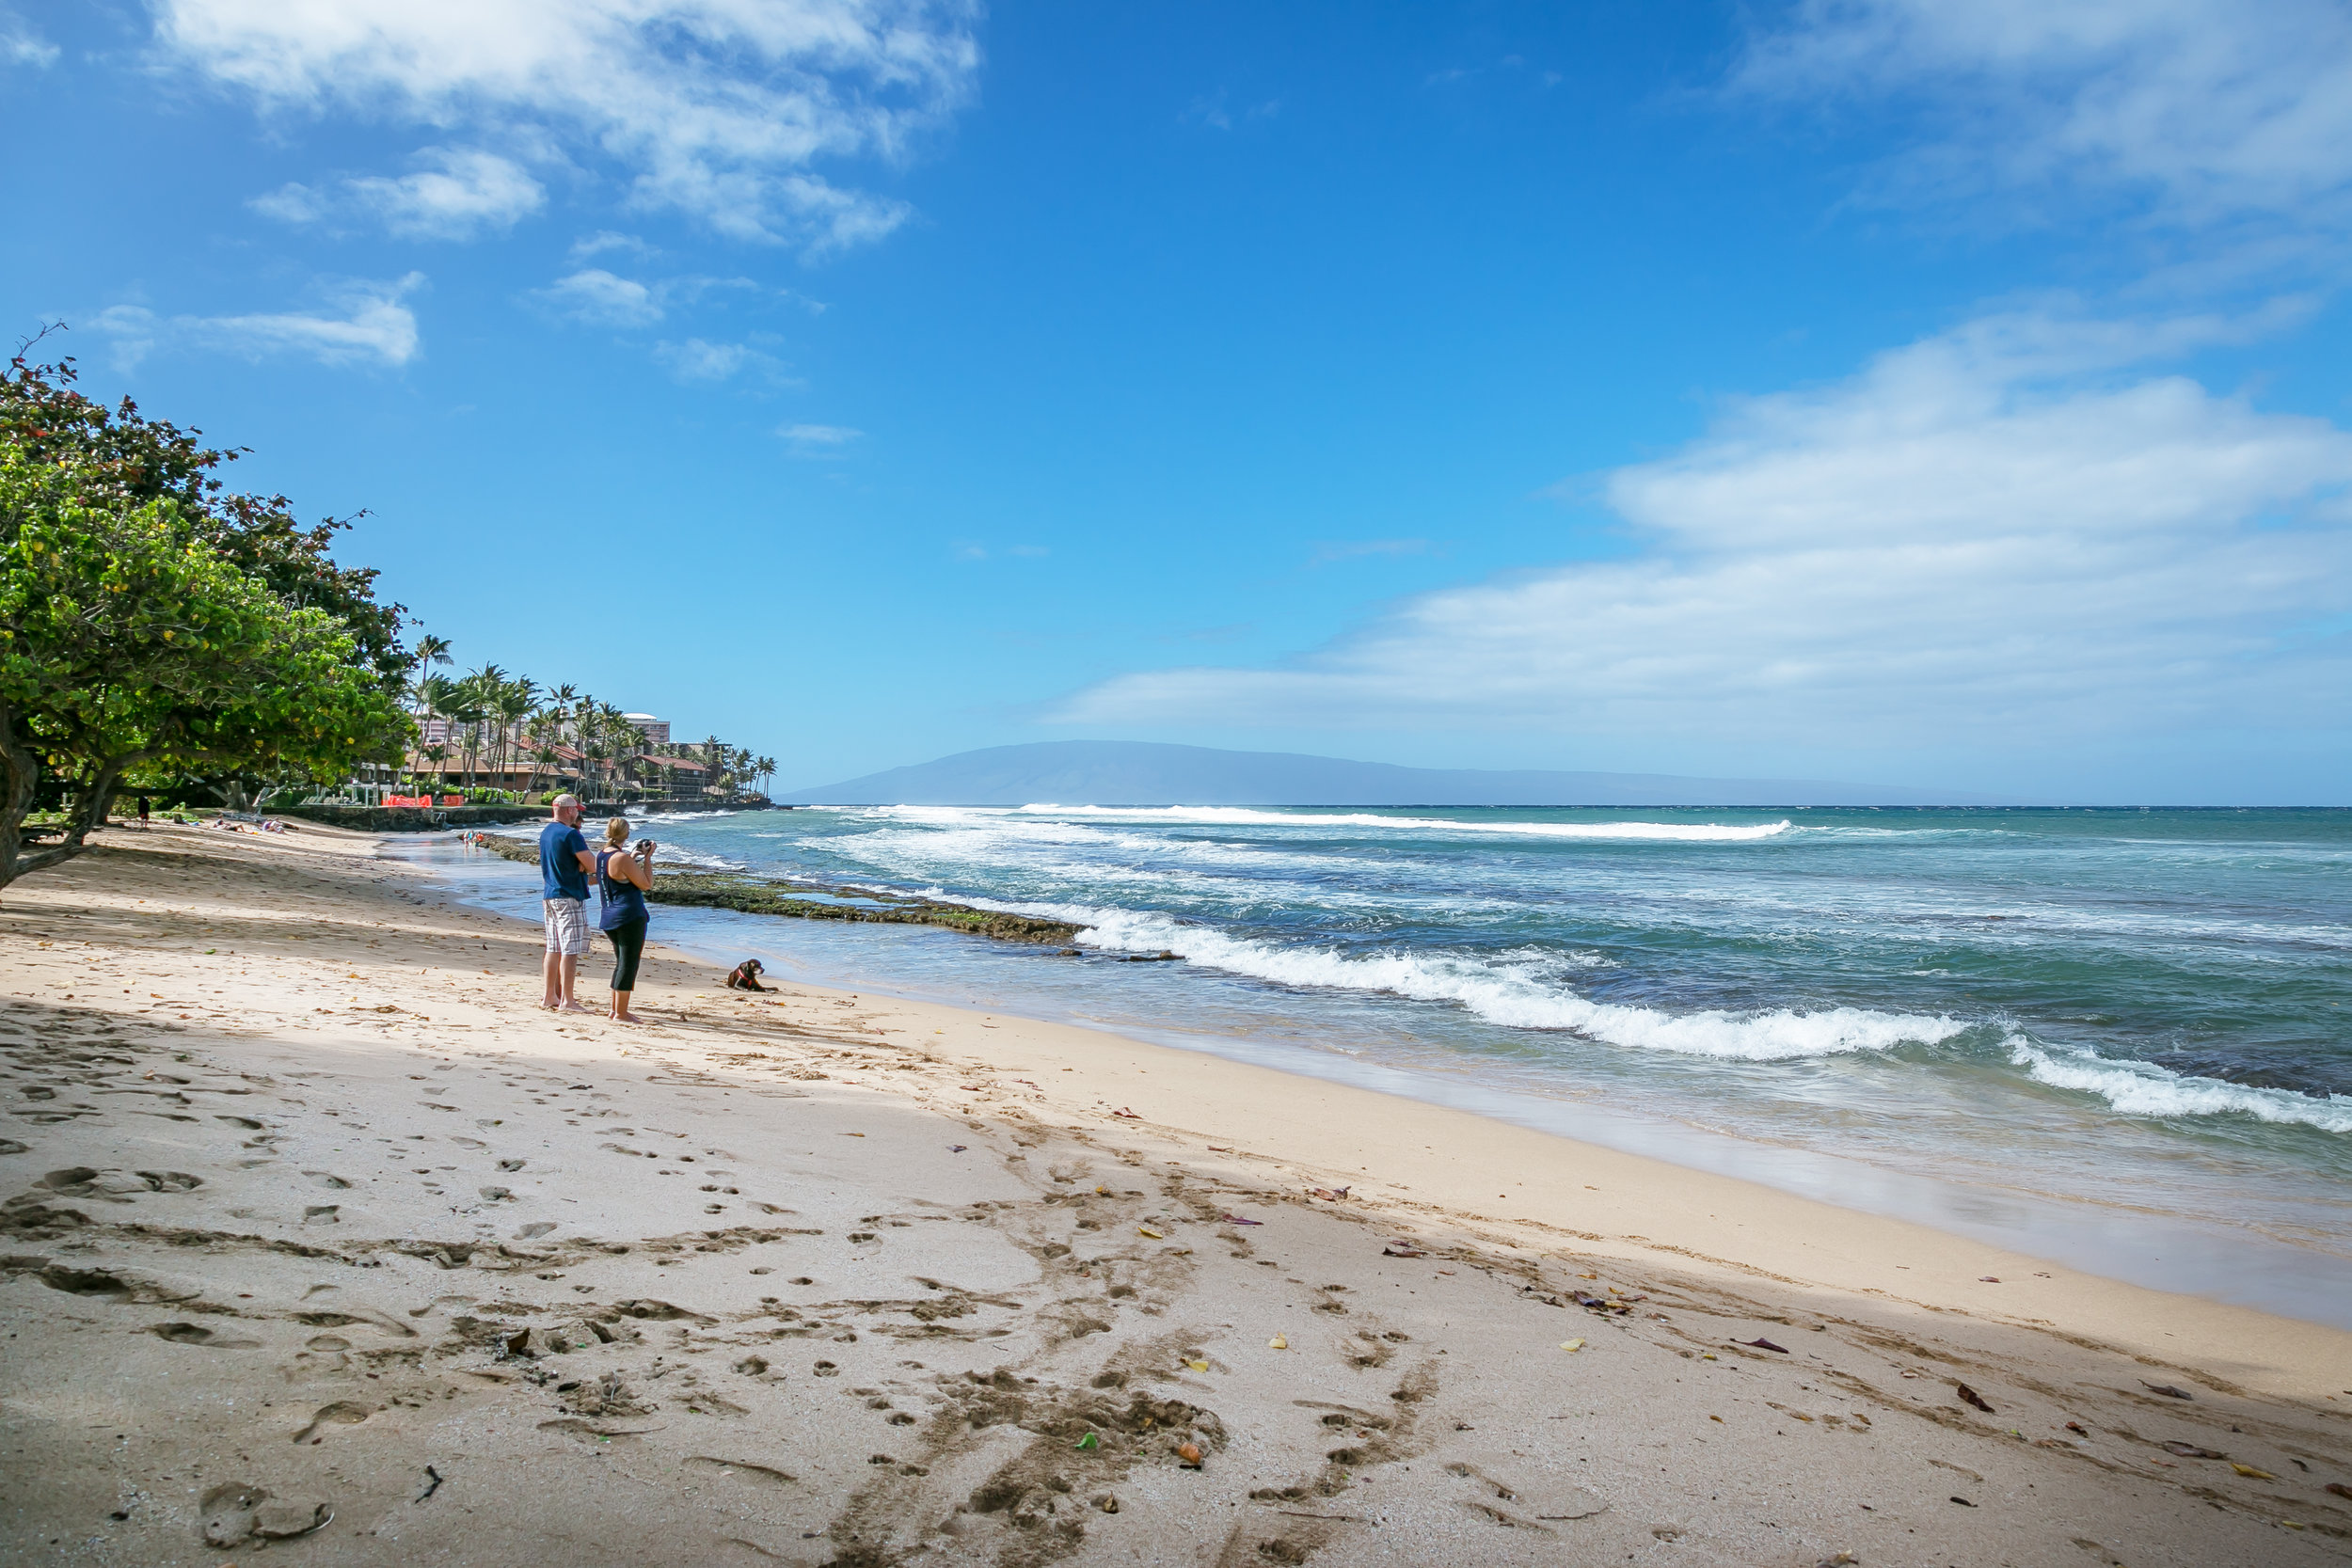 .3 Miles away, Honokawaii Beach Park offers a great beach and gentle surf!